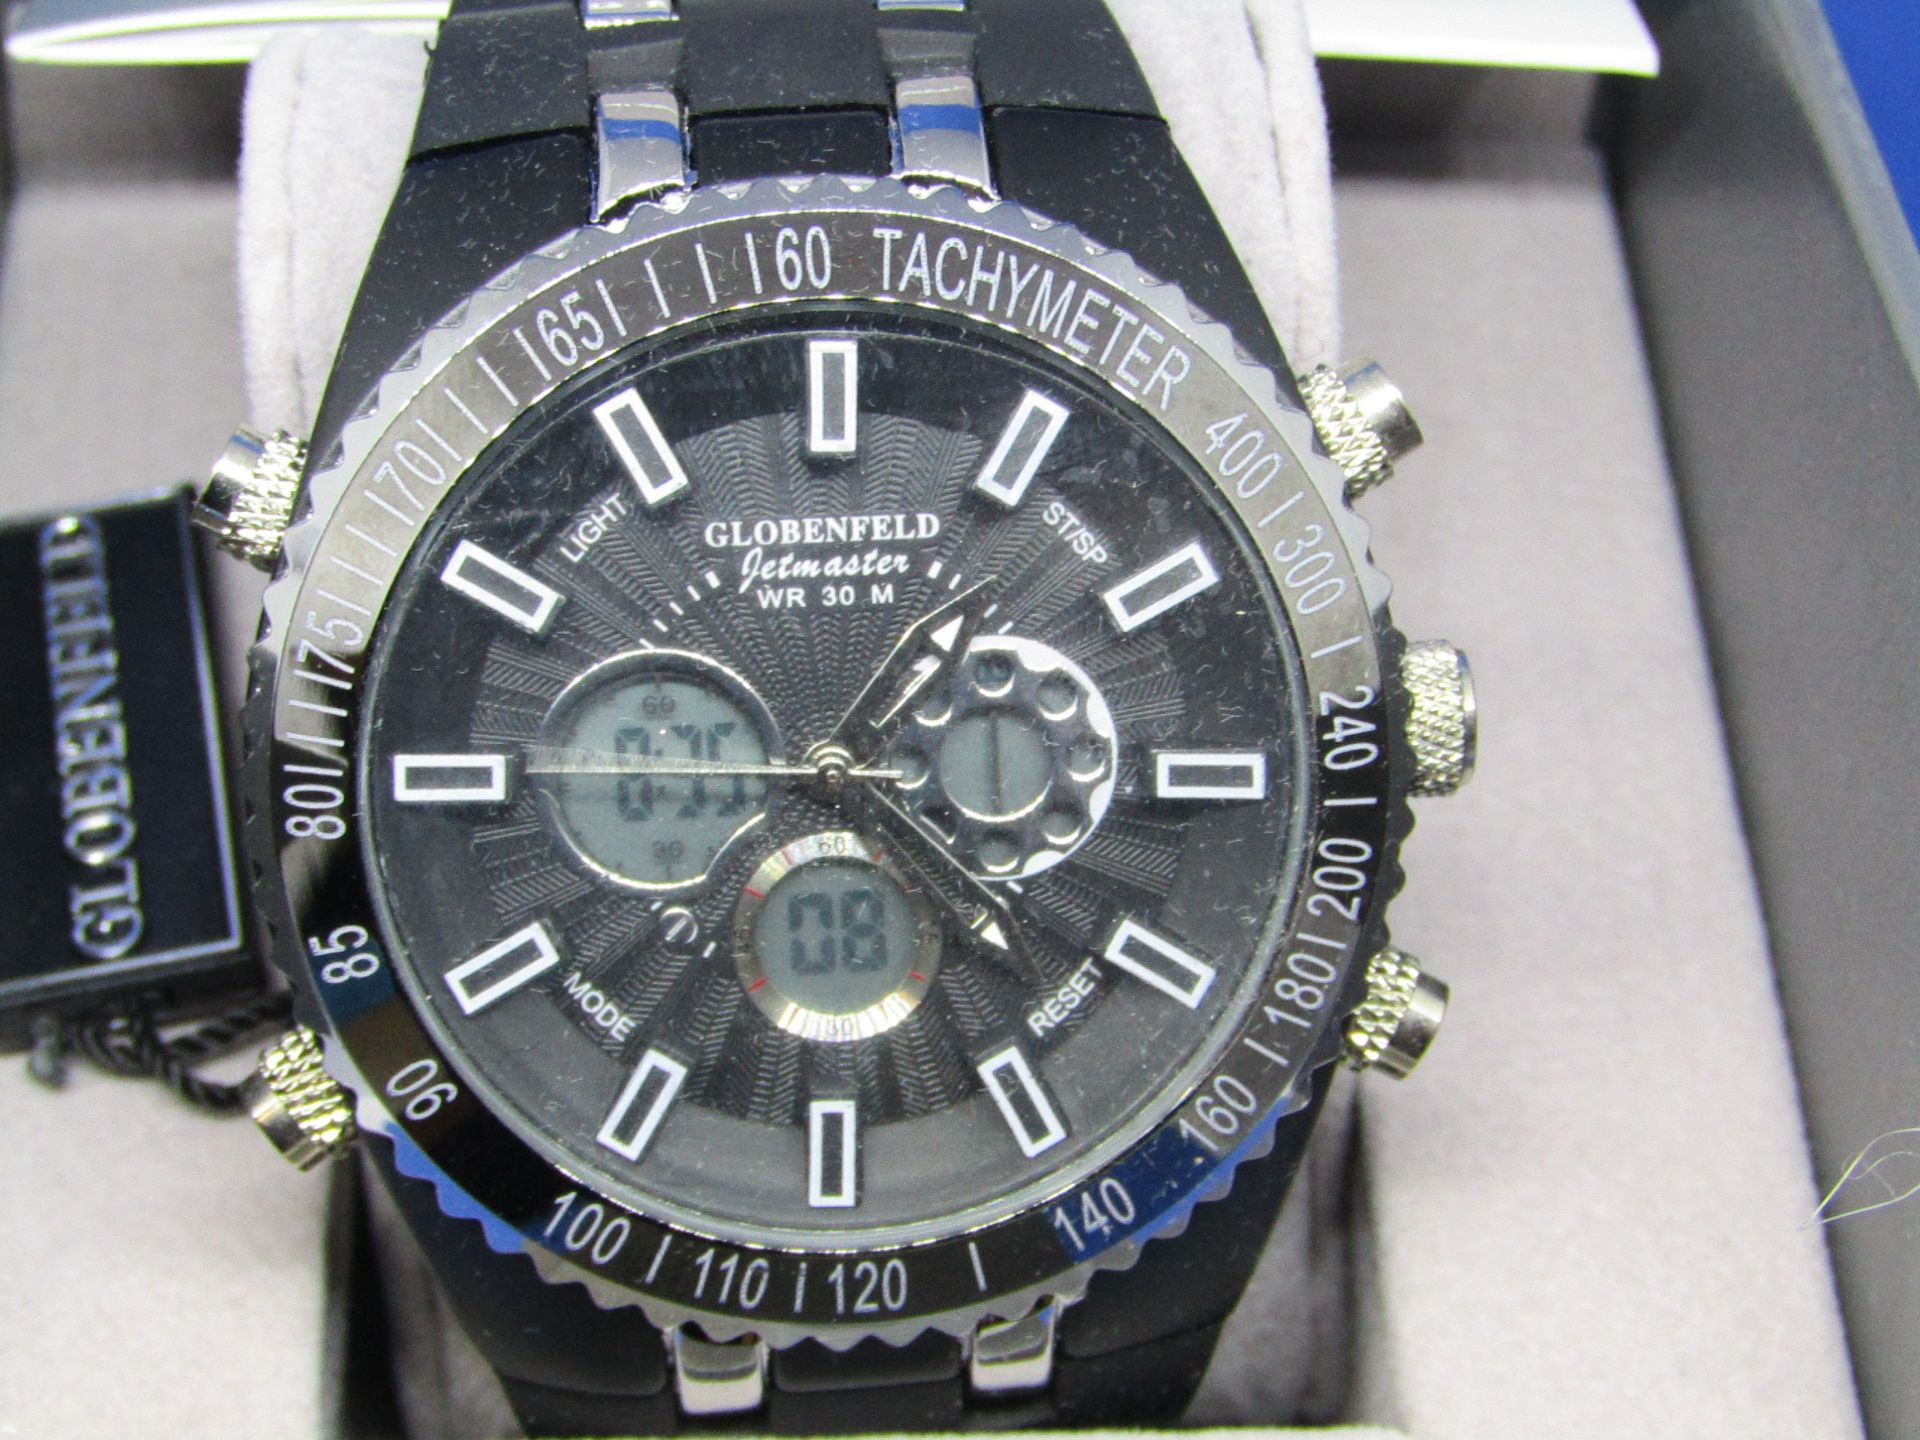 Globenfeld Jetmaster watch, new, ticking and boxed